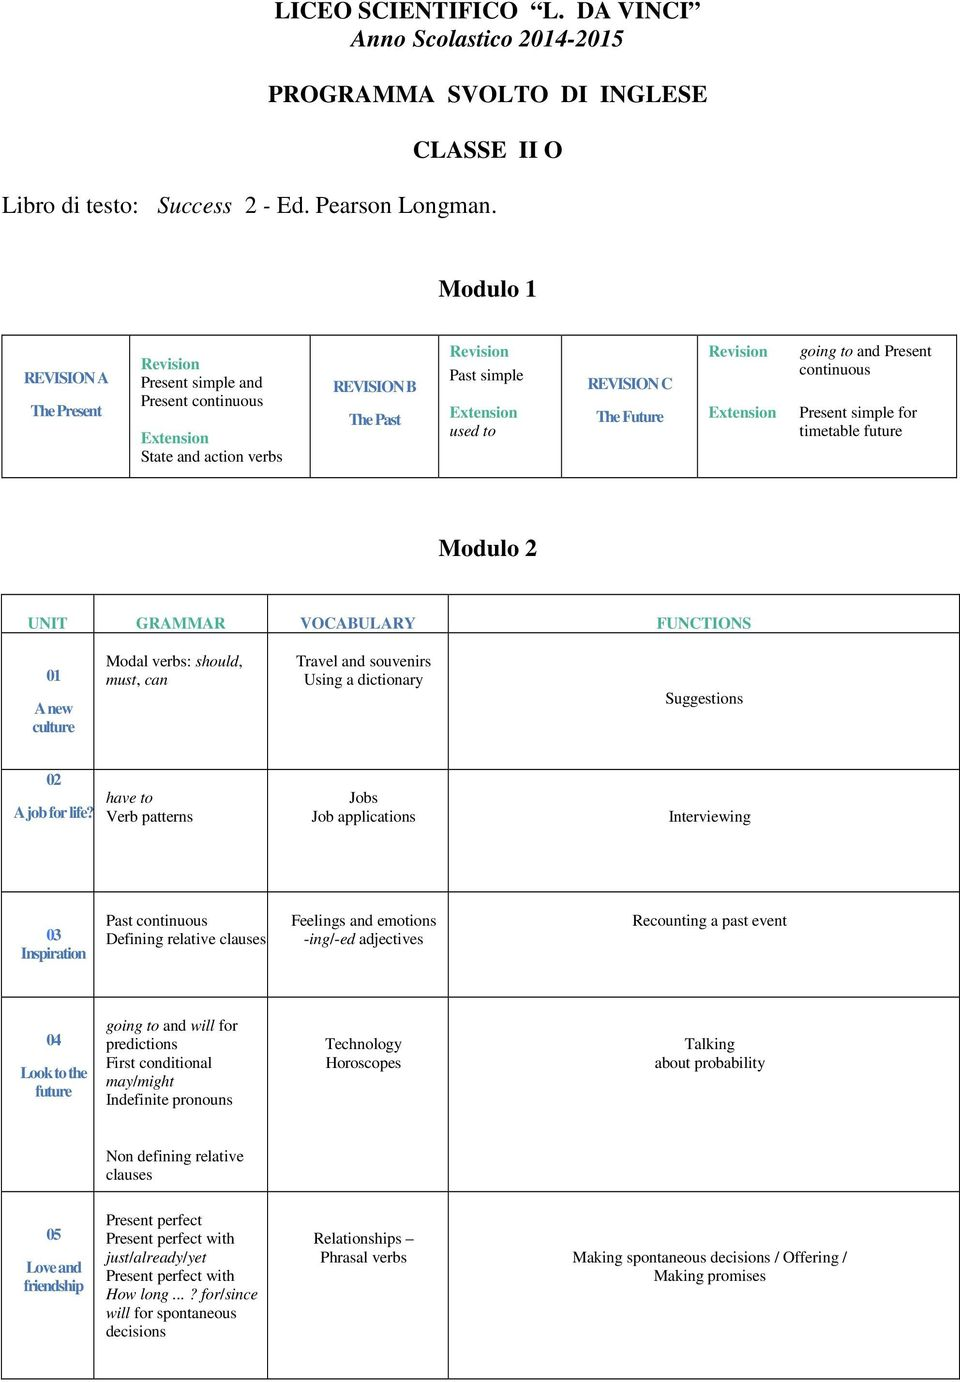 Revision Extension going to and Present continuous Present simple for timetable future Modulo 2 UNIT GRAMMAR VOCABULARY FUNCTIONS 01 A new culture Modal verbs: should, must, can Travel and souvenirs